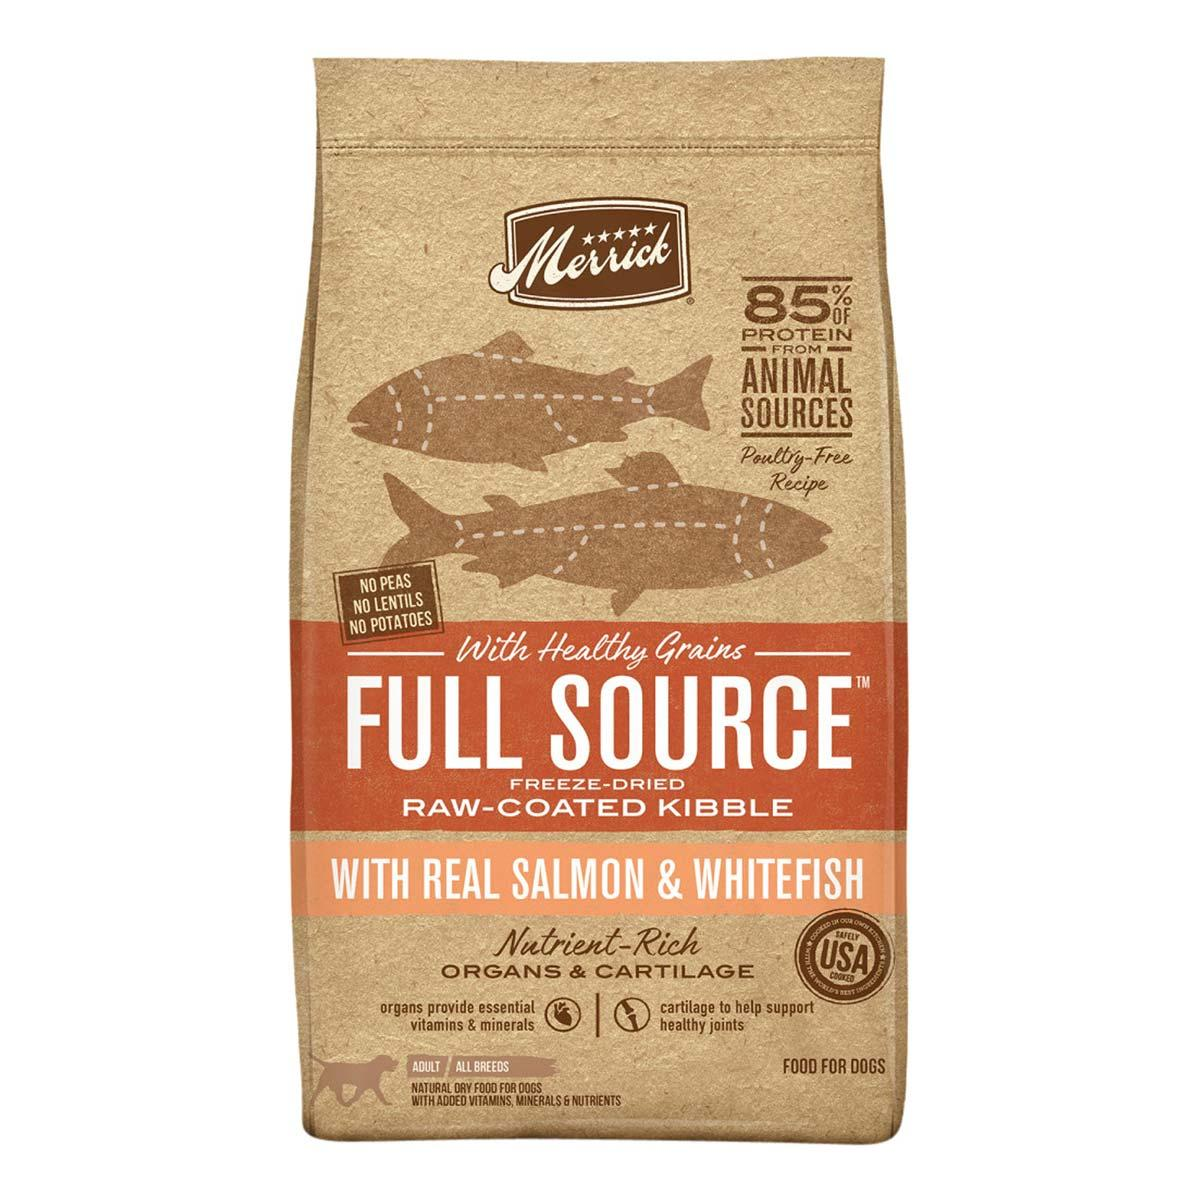 Merrick Full Source with Healthy Grains Raw-Coated Kibble with Real Salmon & Whitefish Dry Dog Food